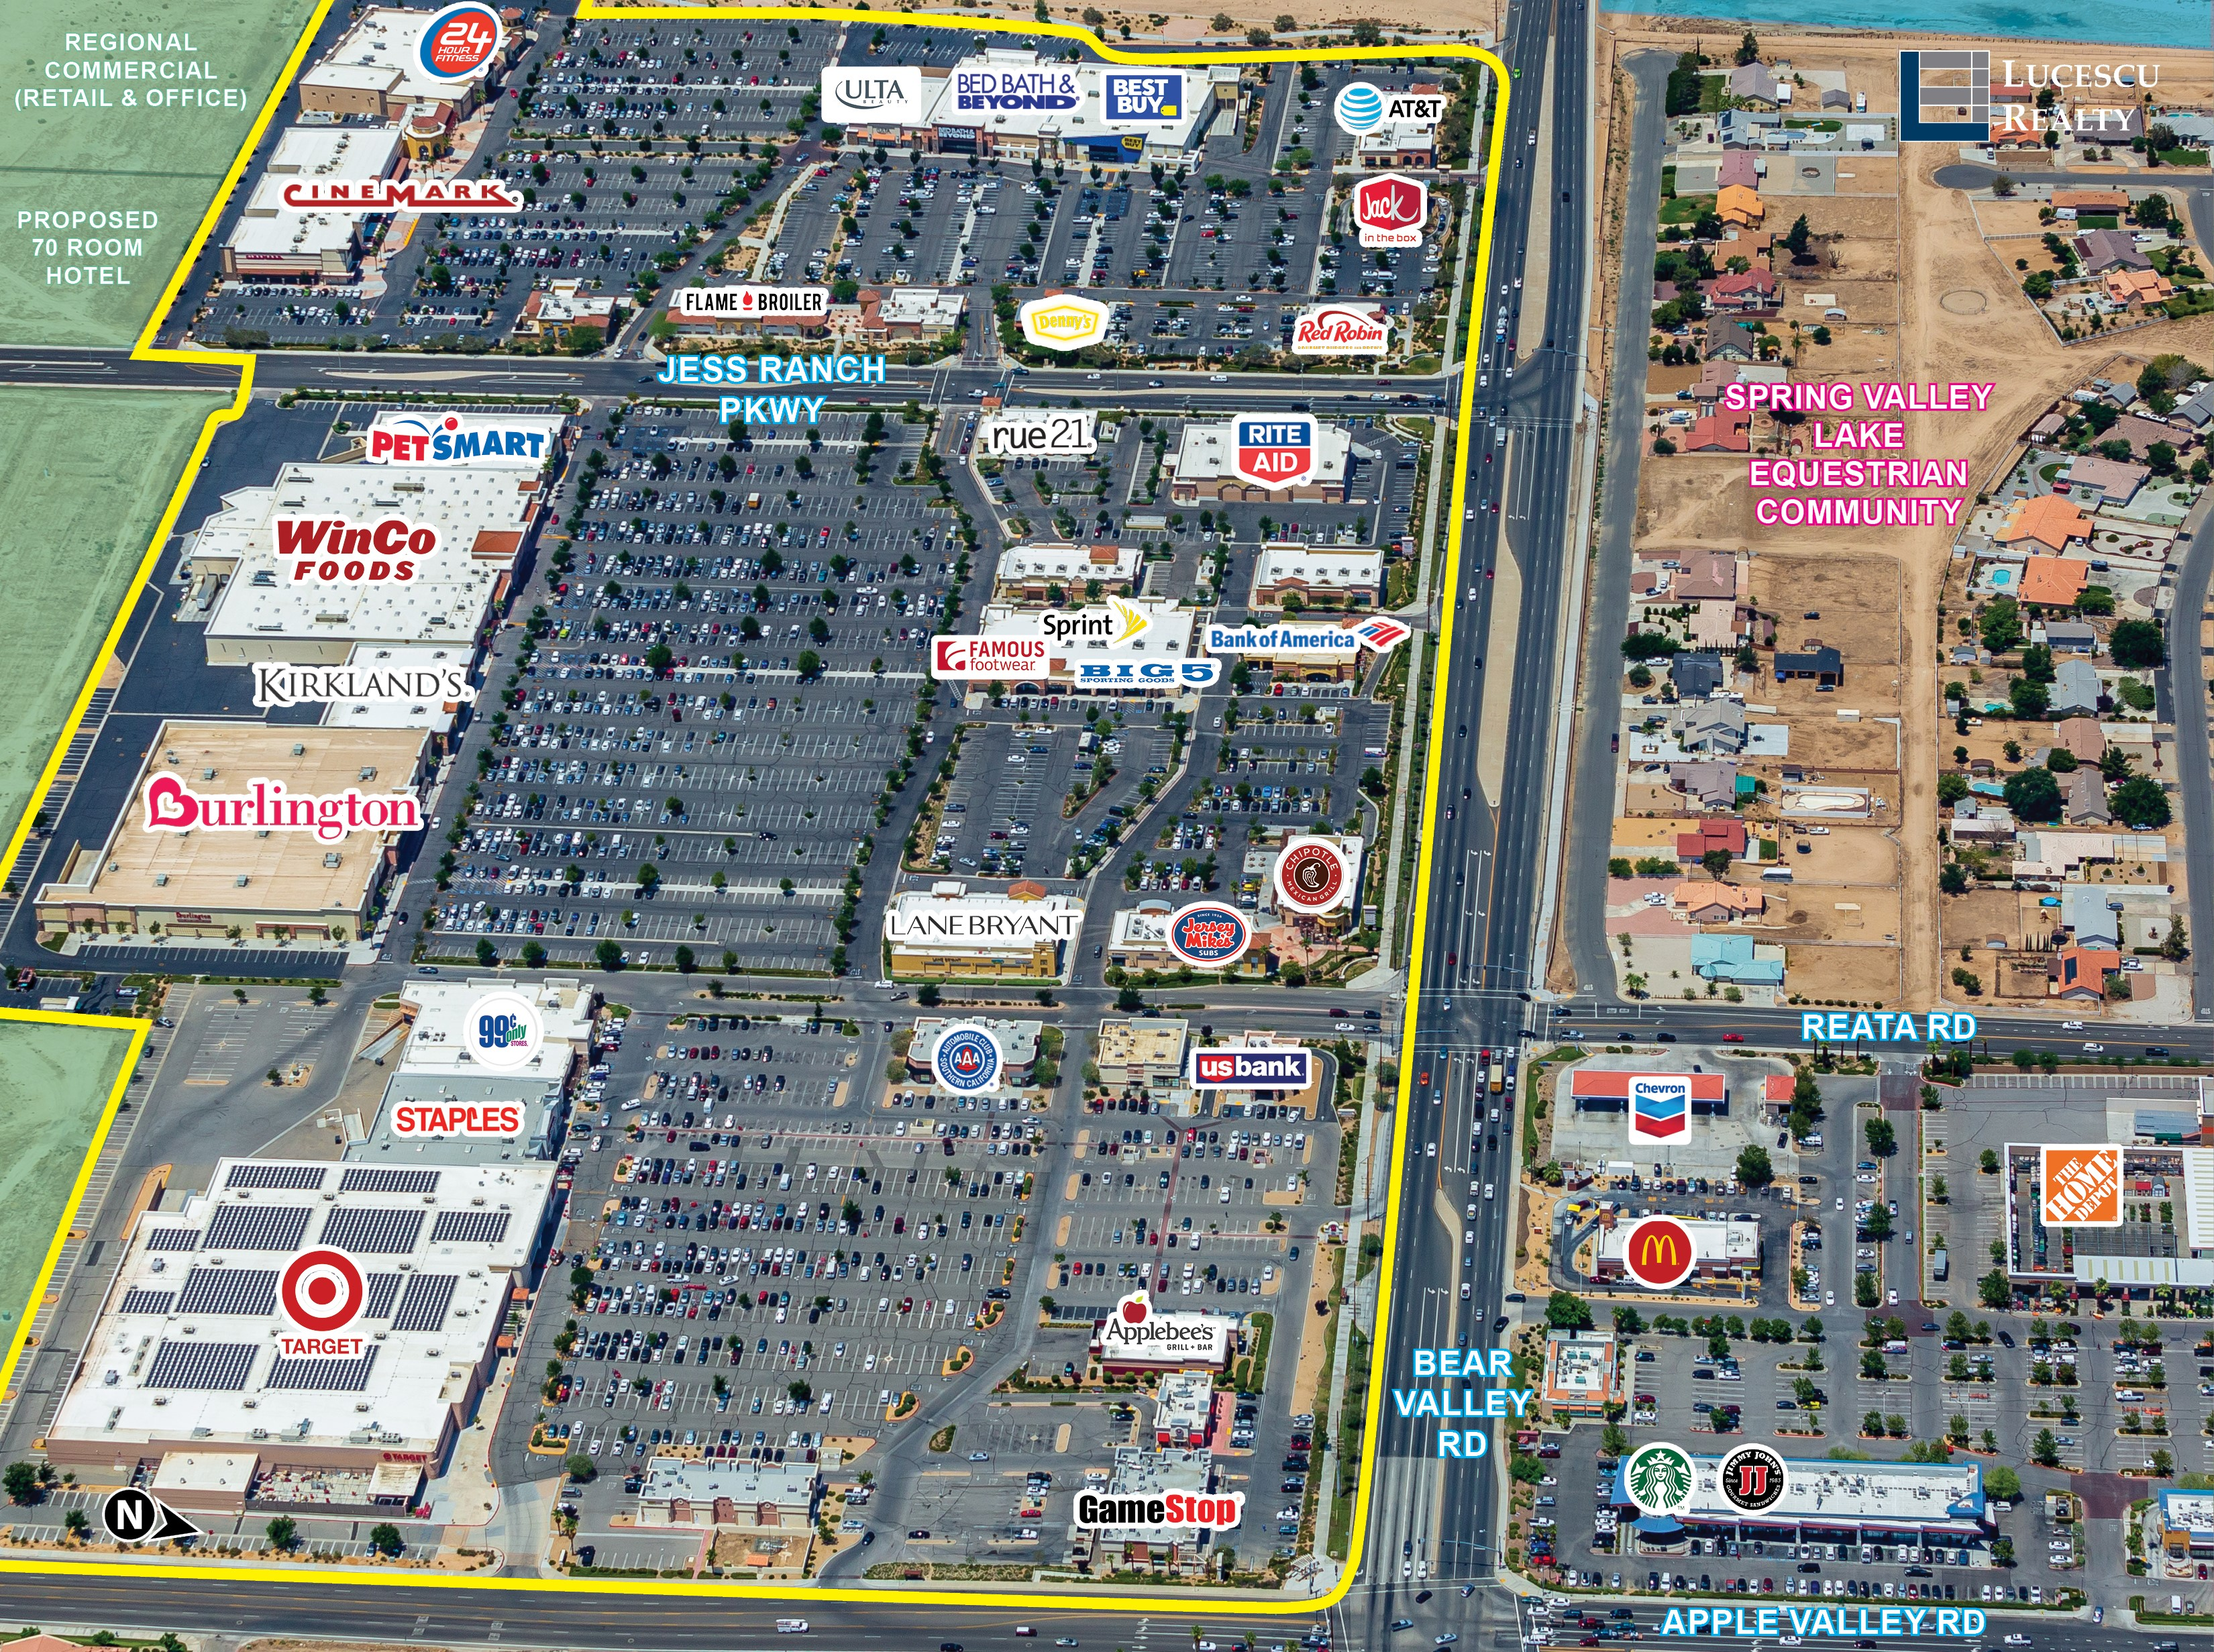 LUCESCU REALTY Announces Sale of Jess Ranch Marketplace in Apple Valley (Inland Empire), CA for $89.0 Million